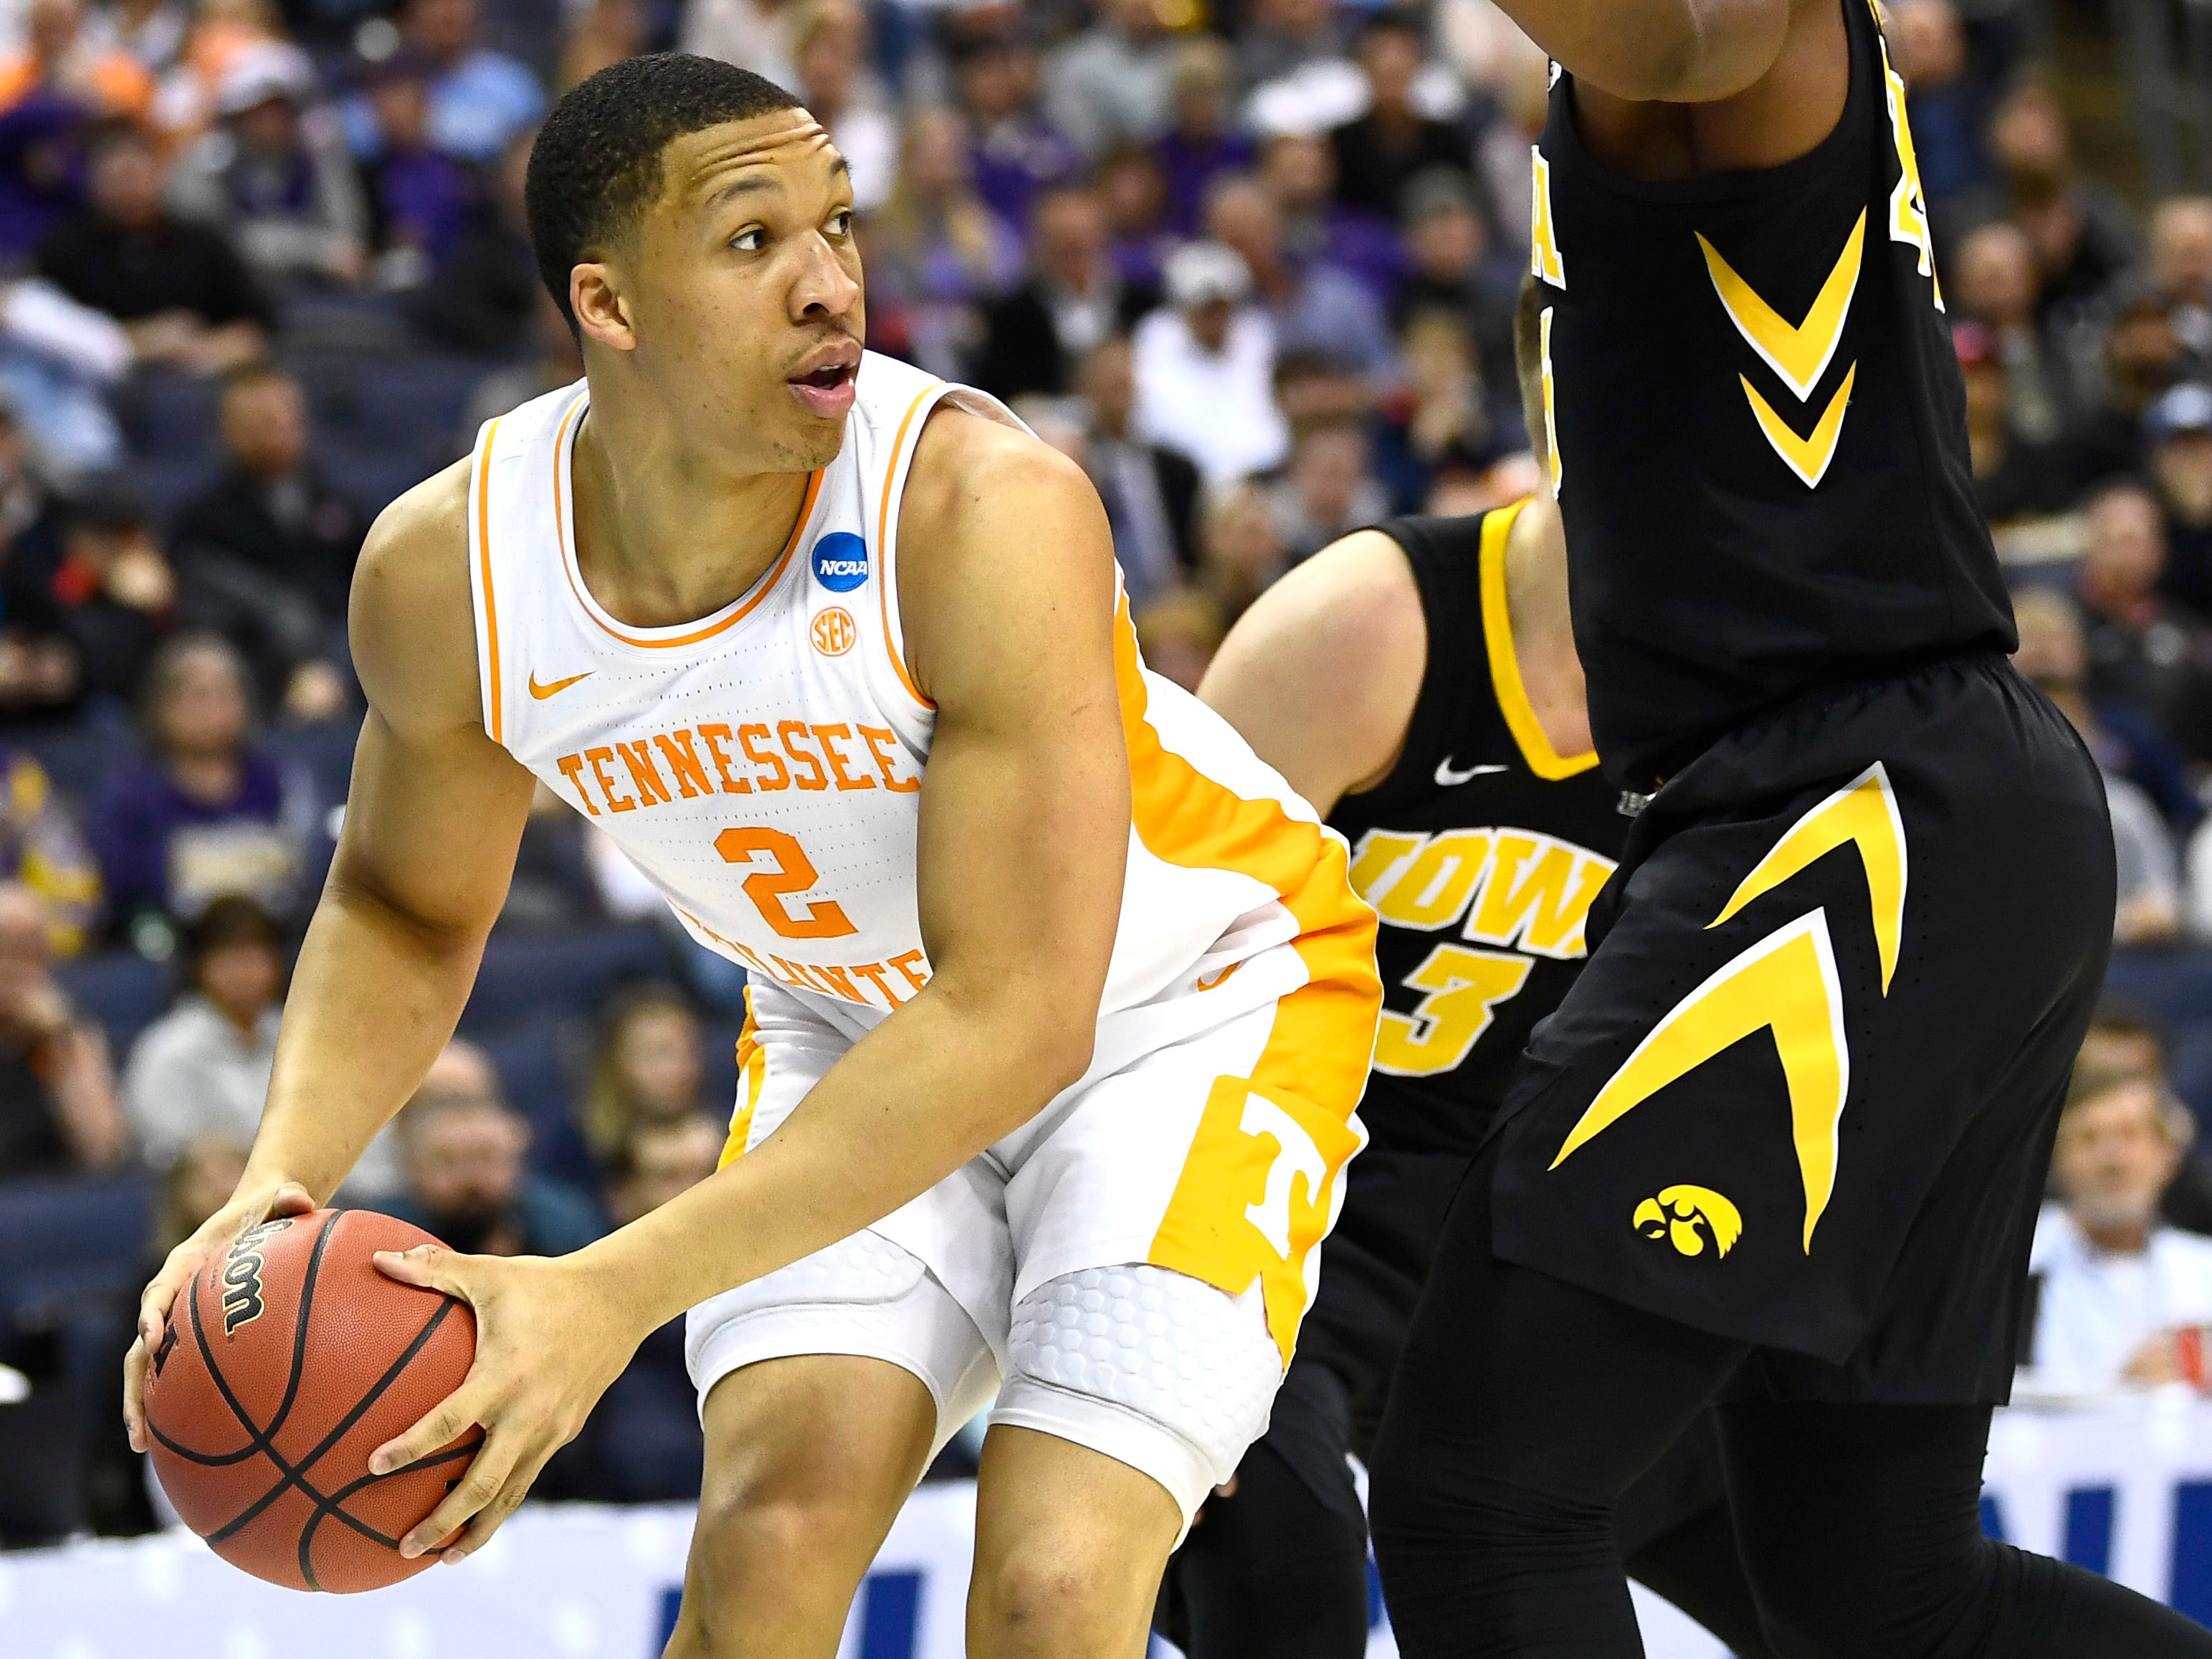 Tennessee forward Grant Williams (2) looks past Iowa forward Tyler Cook (25) for an opening during the second half of the second-round game of the NCAA Tournament at Nationwide Arena in Columbus, Ohio, Sunday, March 24, 2019.